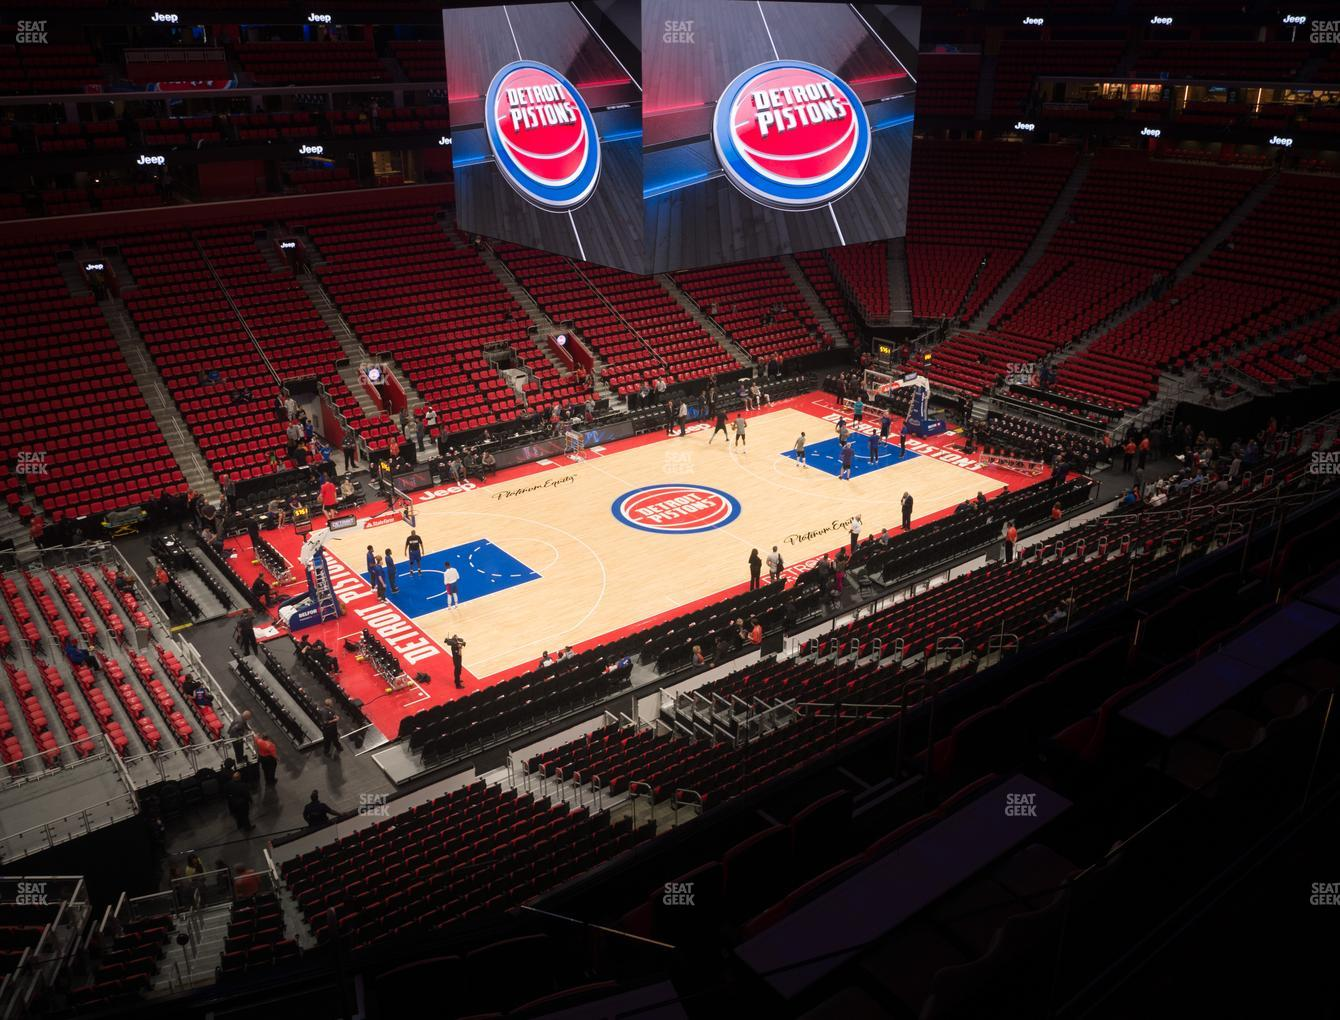 Detroit Pistons at Little Caesars Arena Mezzanine 15 View